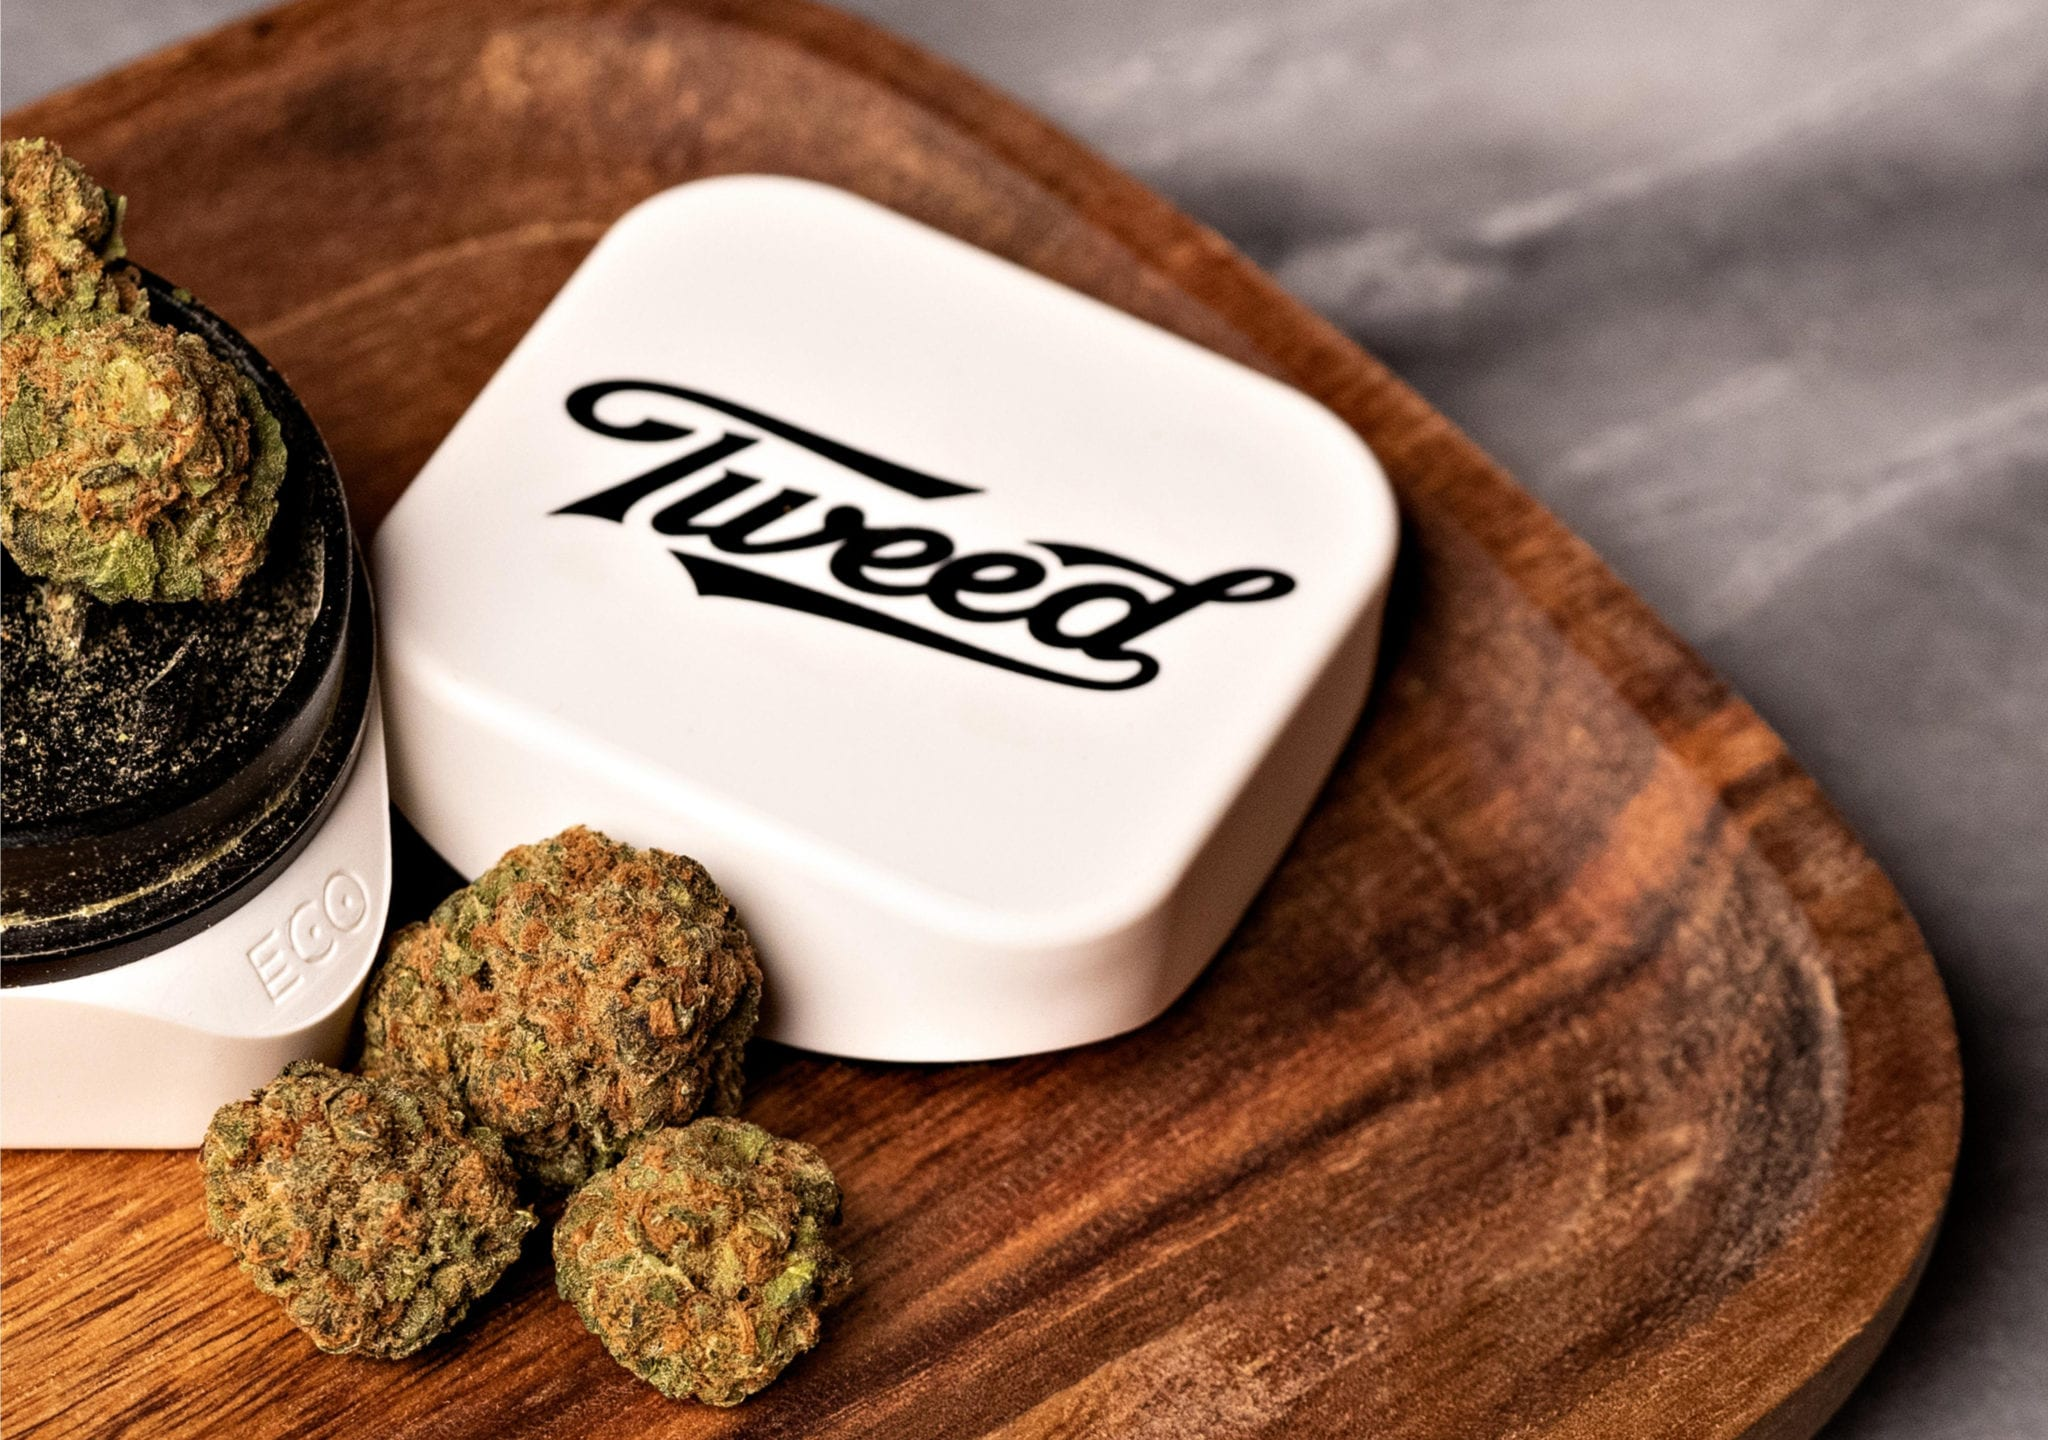 Cannabis brand awareness remains low among Canadian consumers: survey